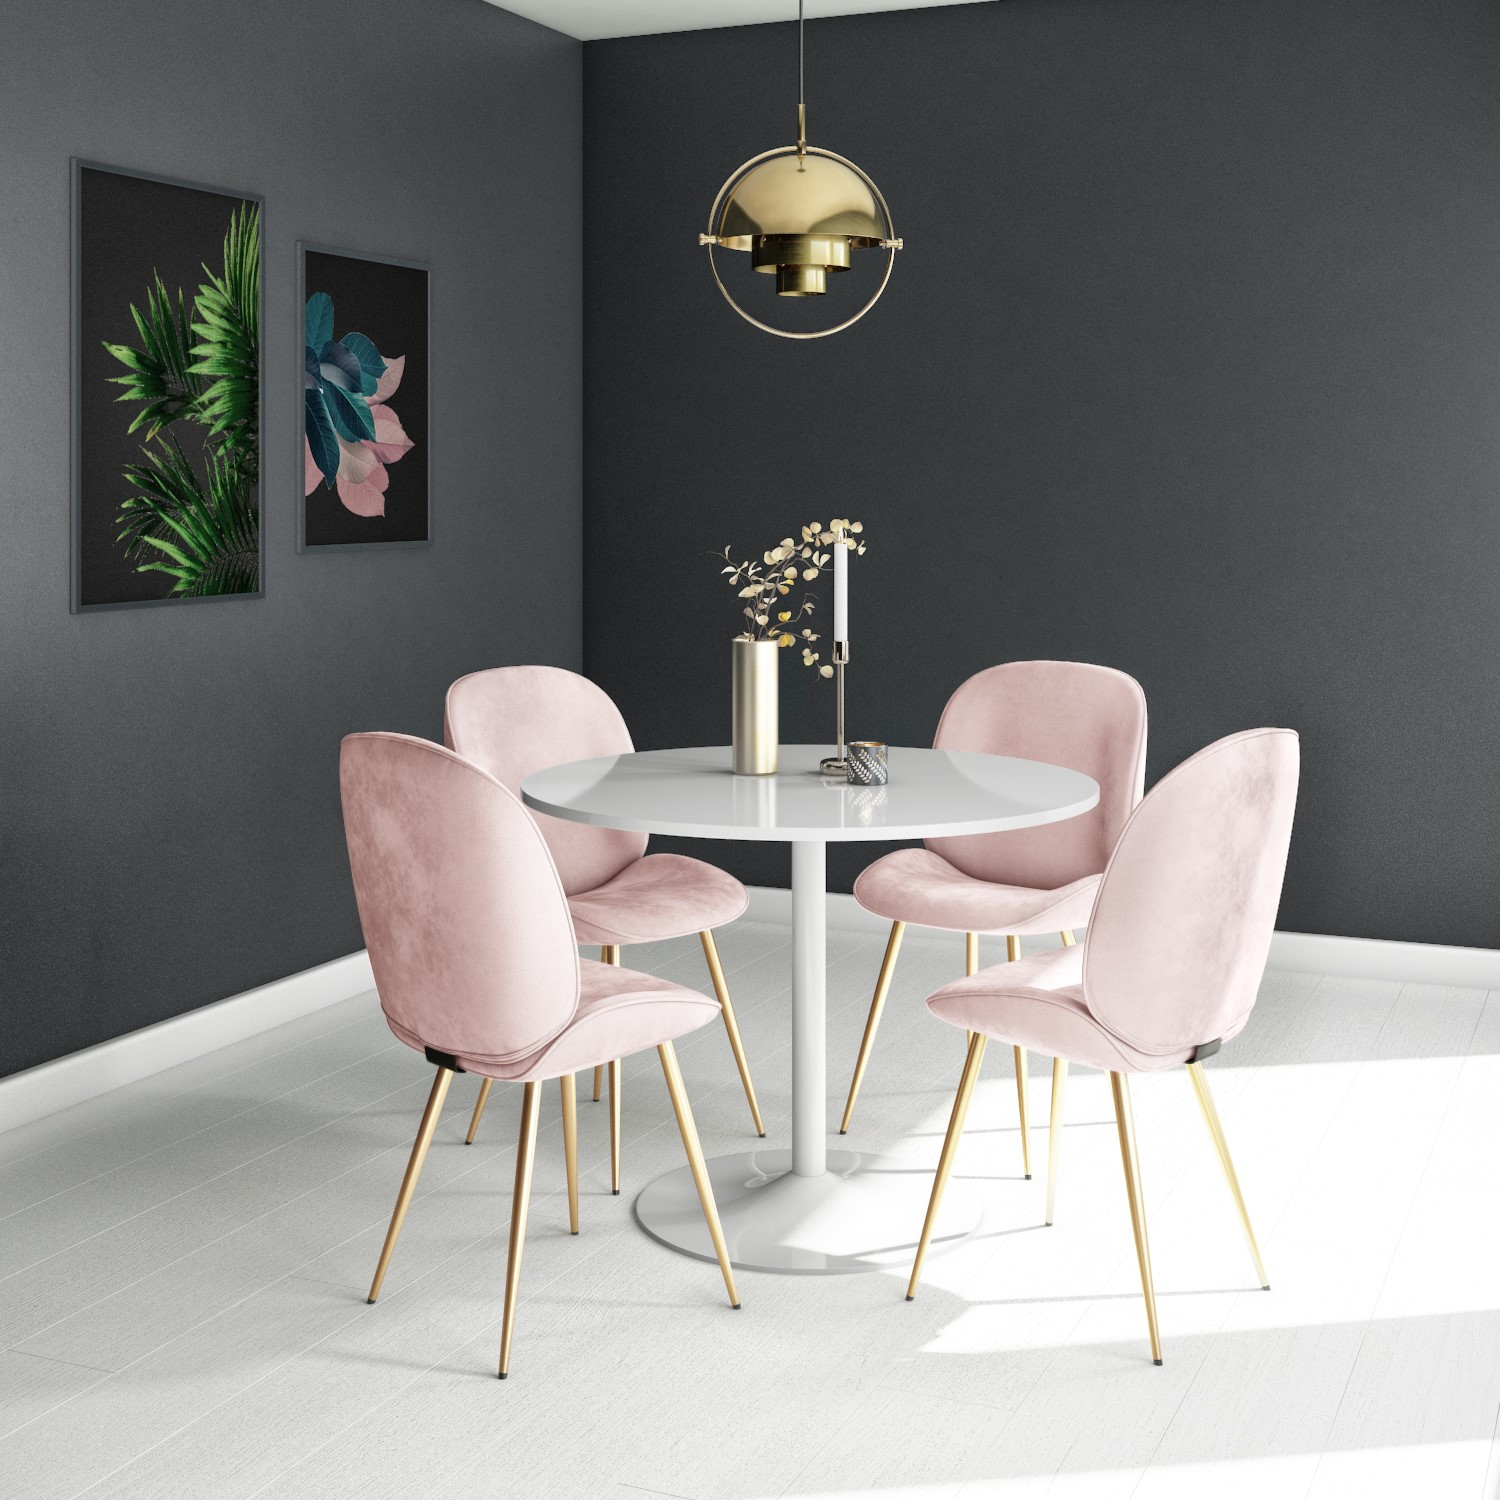 Picture of: Set Of 2 Pink Velvet Dining Chairs With Gold Legs Jenna Furniture123